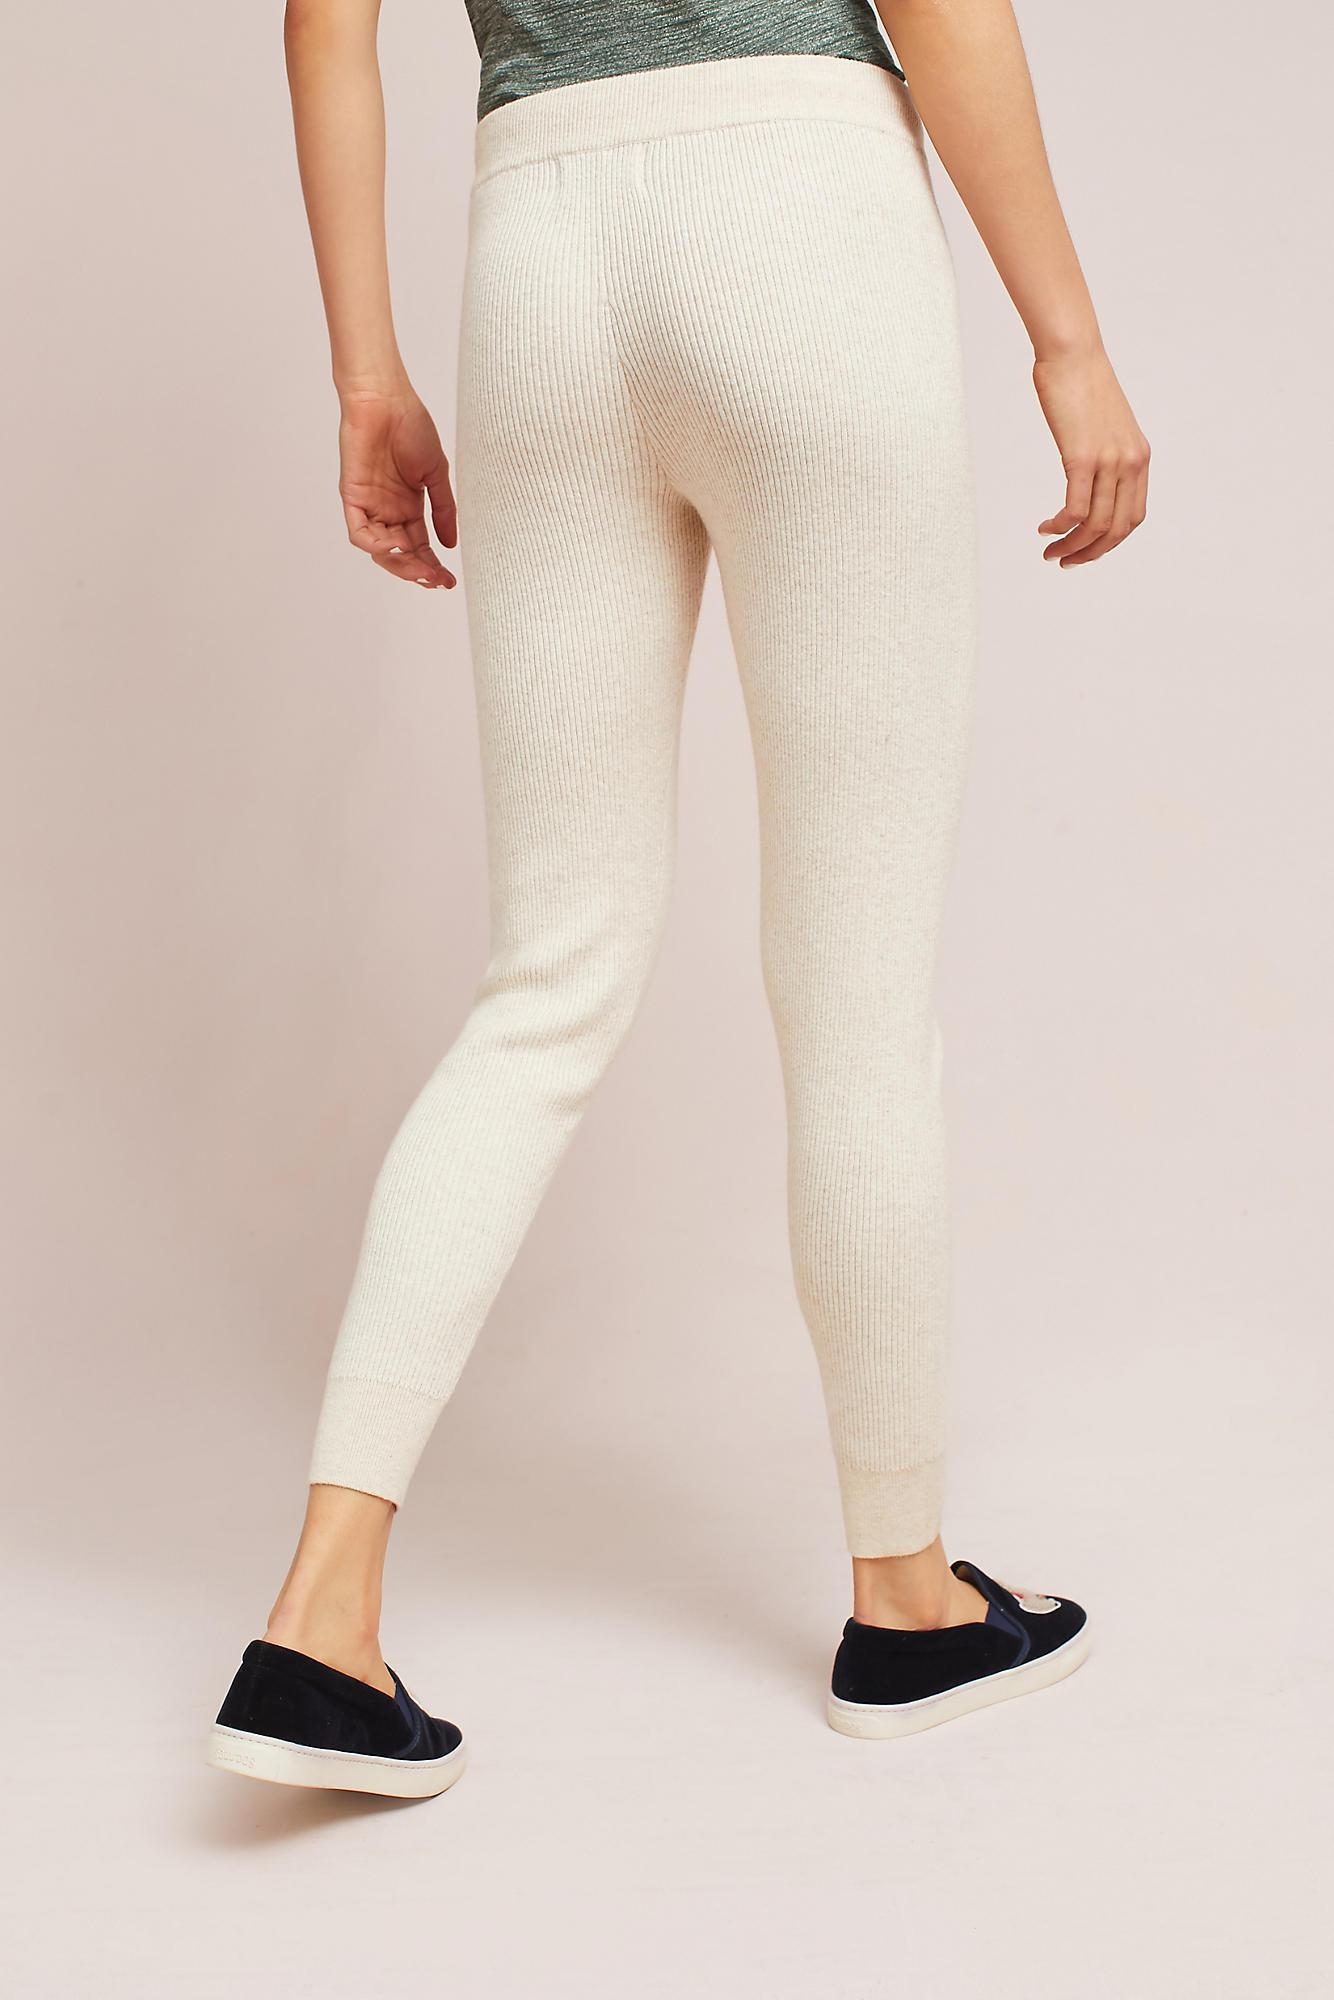 Hansel from basel Ribbed Sweater Leggings in Natural | Lyst